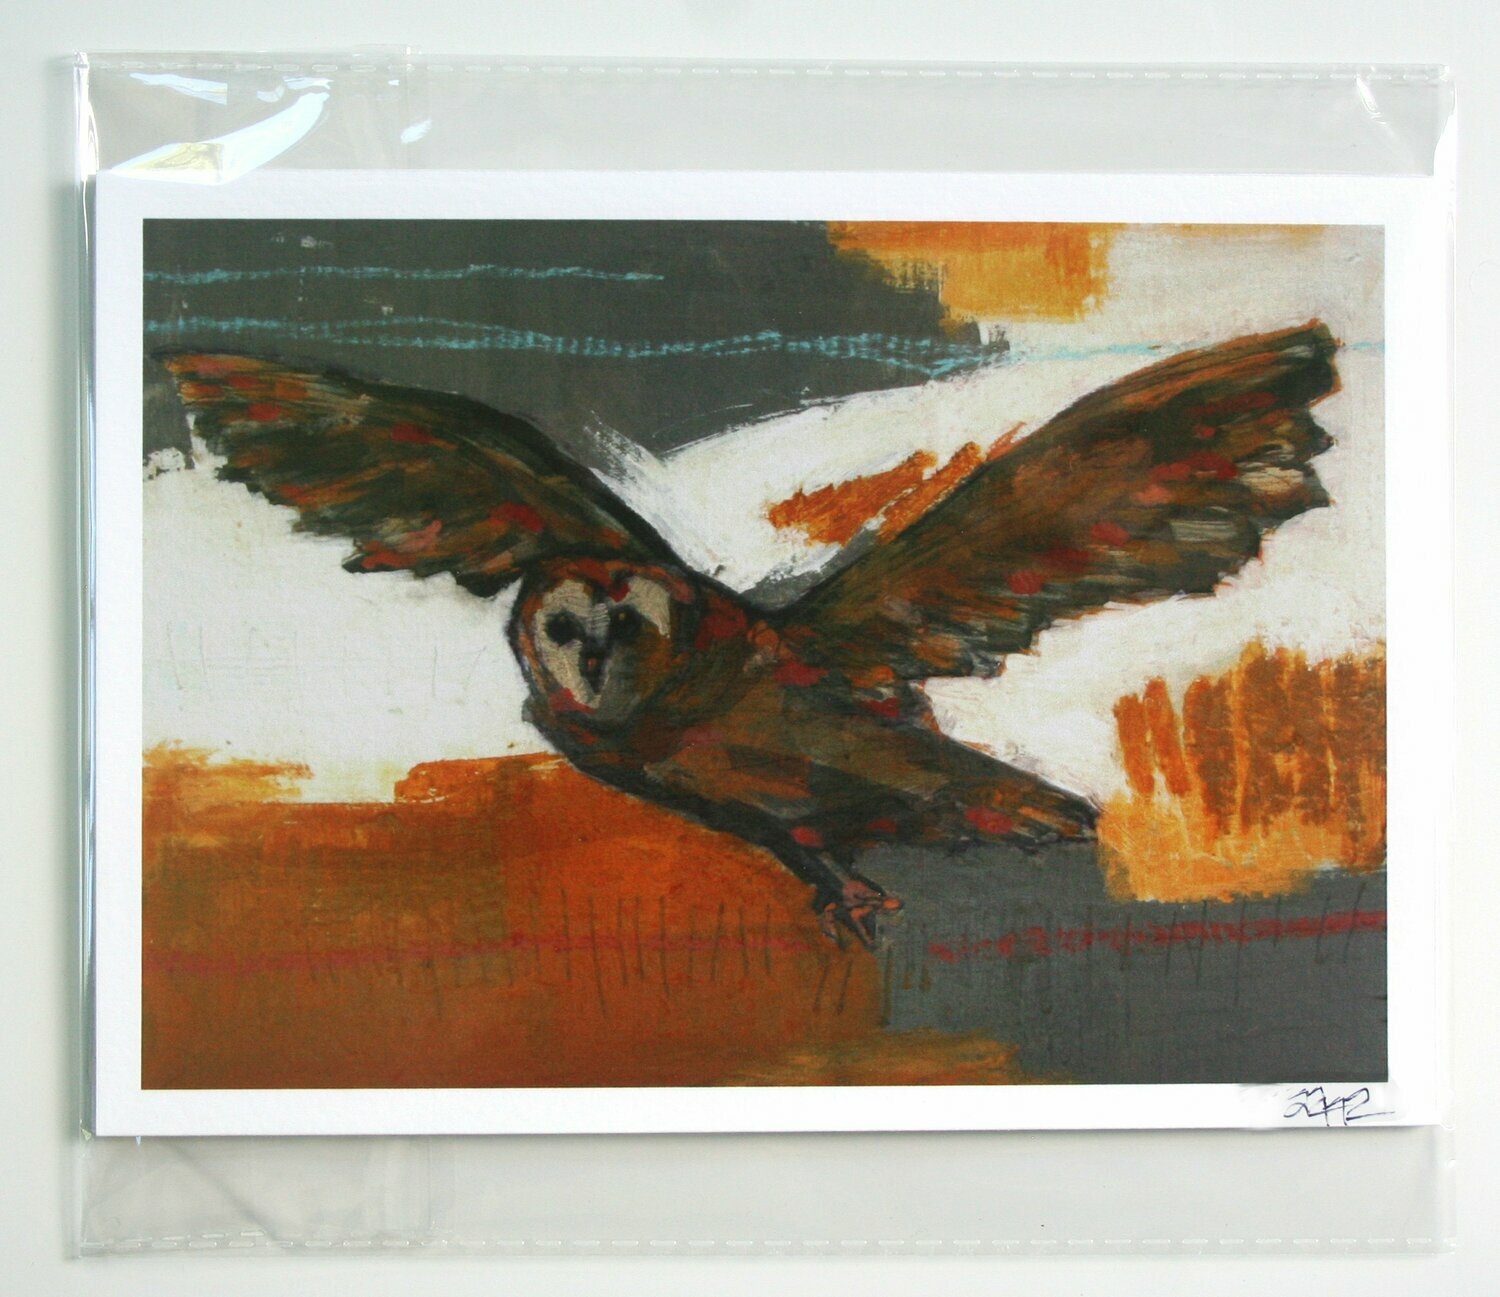 "flying owl bird print limited edition 5x7"" a2n2koon giclee in resealable sleeve fits standard 5x7"" frame bird in flight art print autumn art"